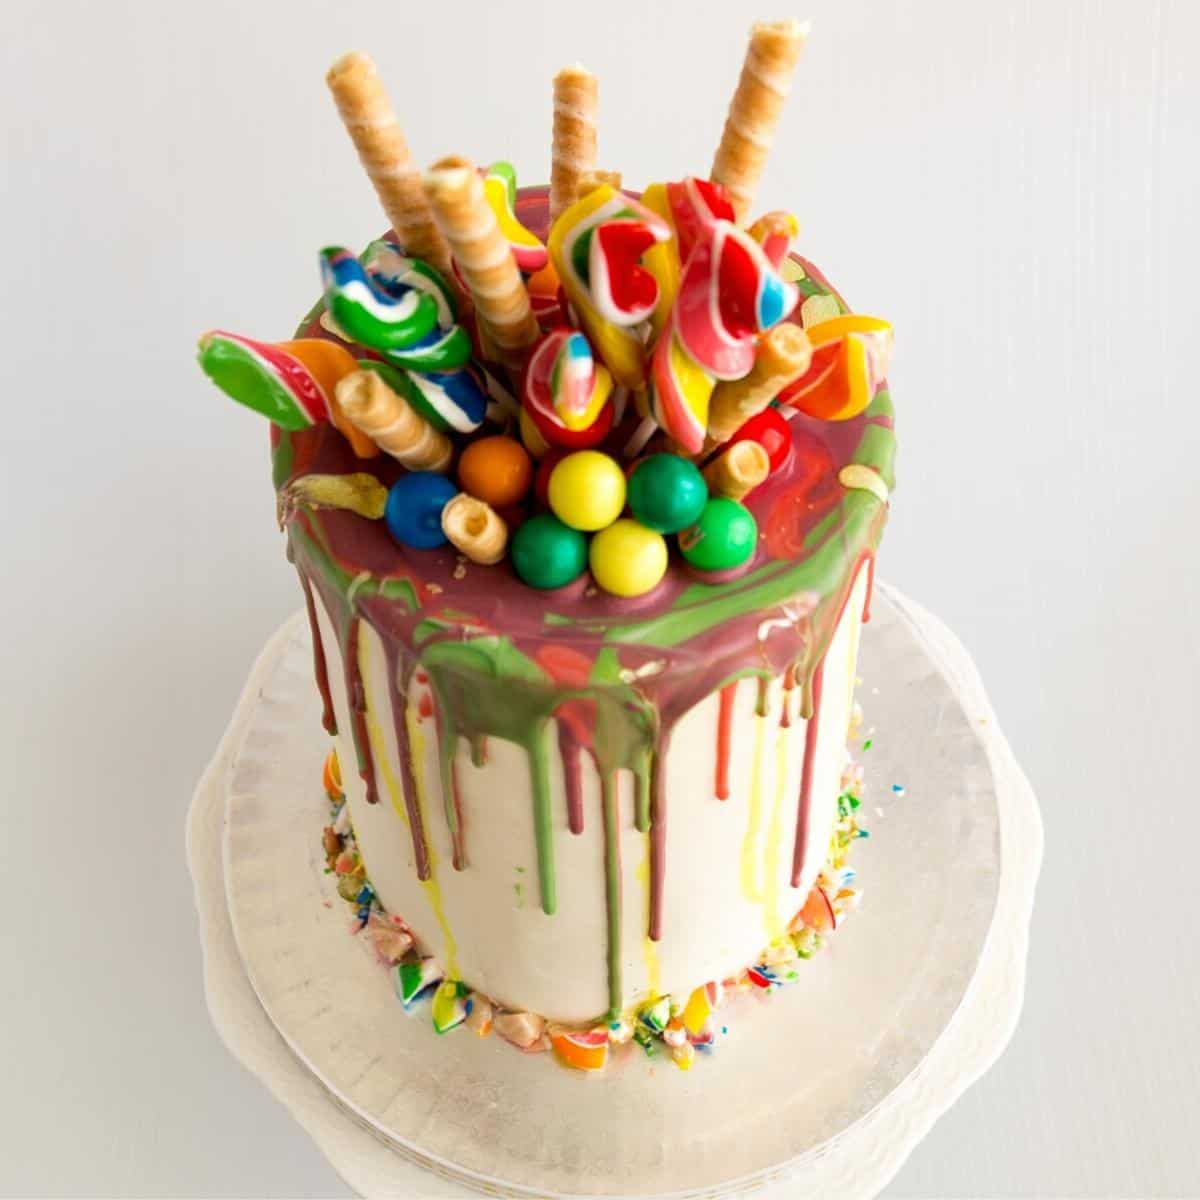 Rainbow layer cake topped with candy and wafers